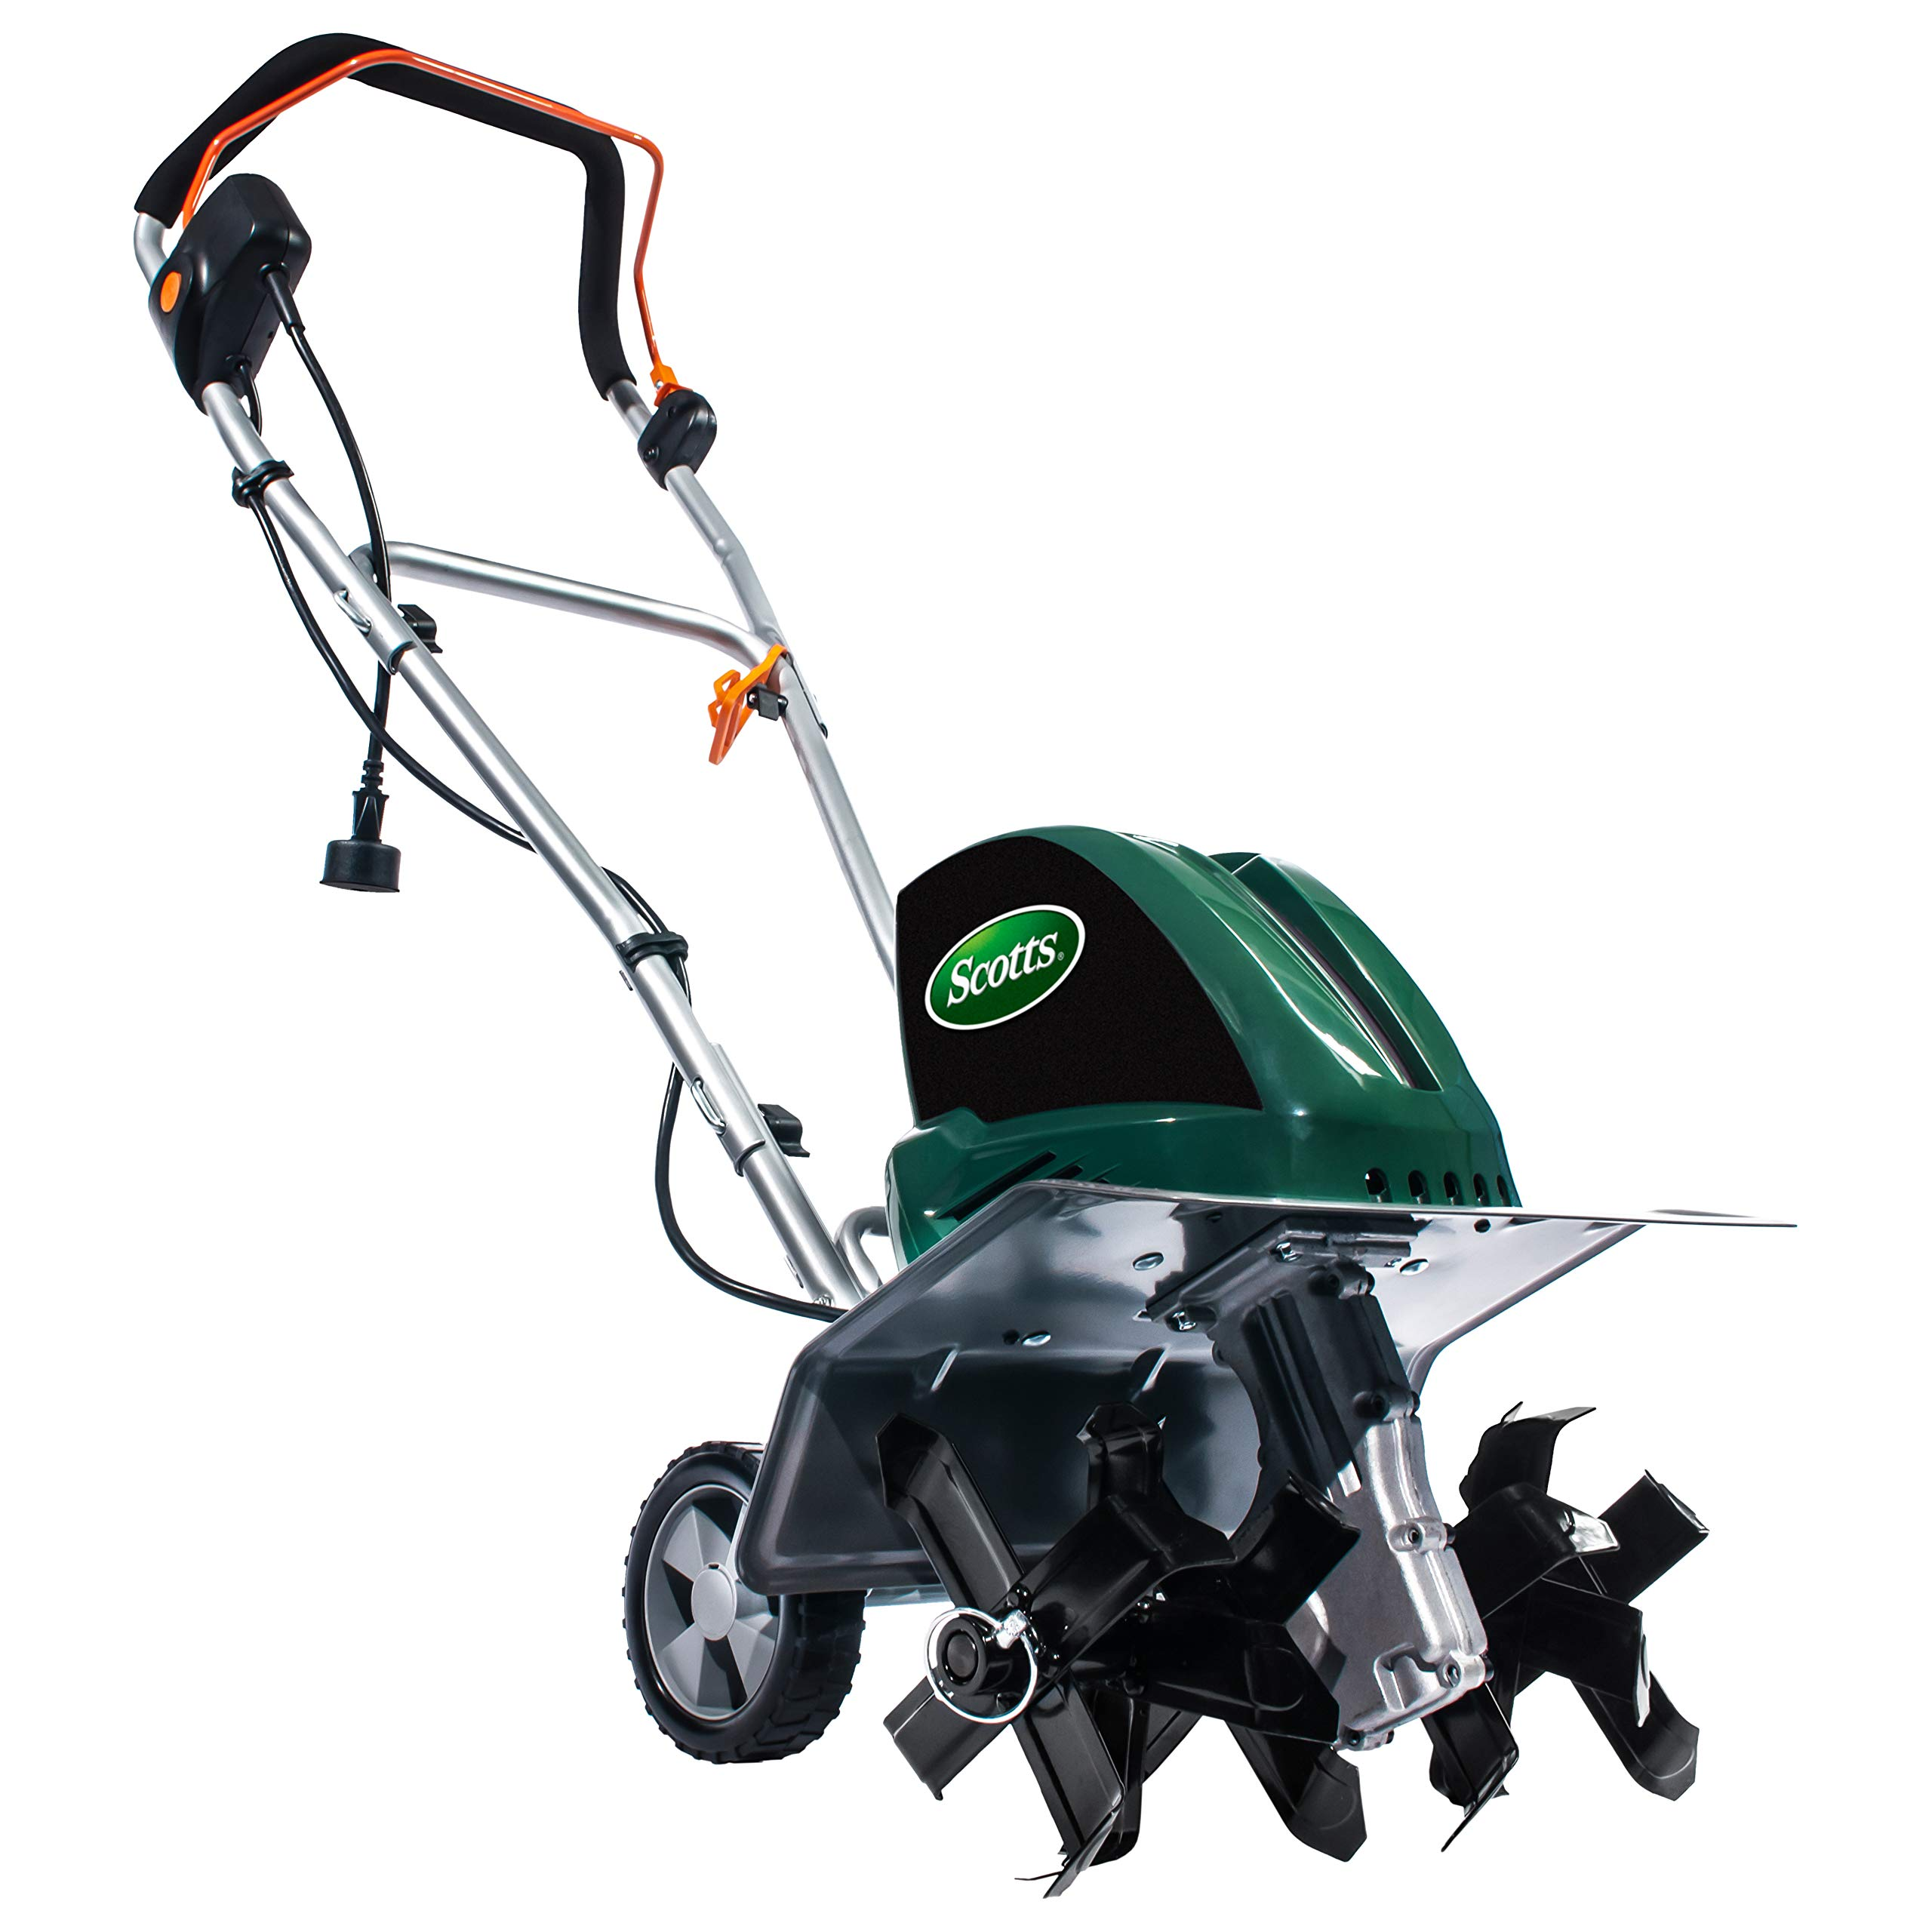 Scotts Outdoor Power Tools TC70135S 13.5-Amp 16-Inch Corded Tiller/Cultivator, Green by Scotts Outdoor Power Tools